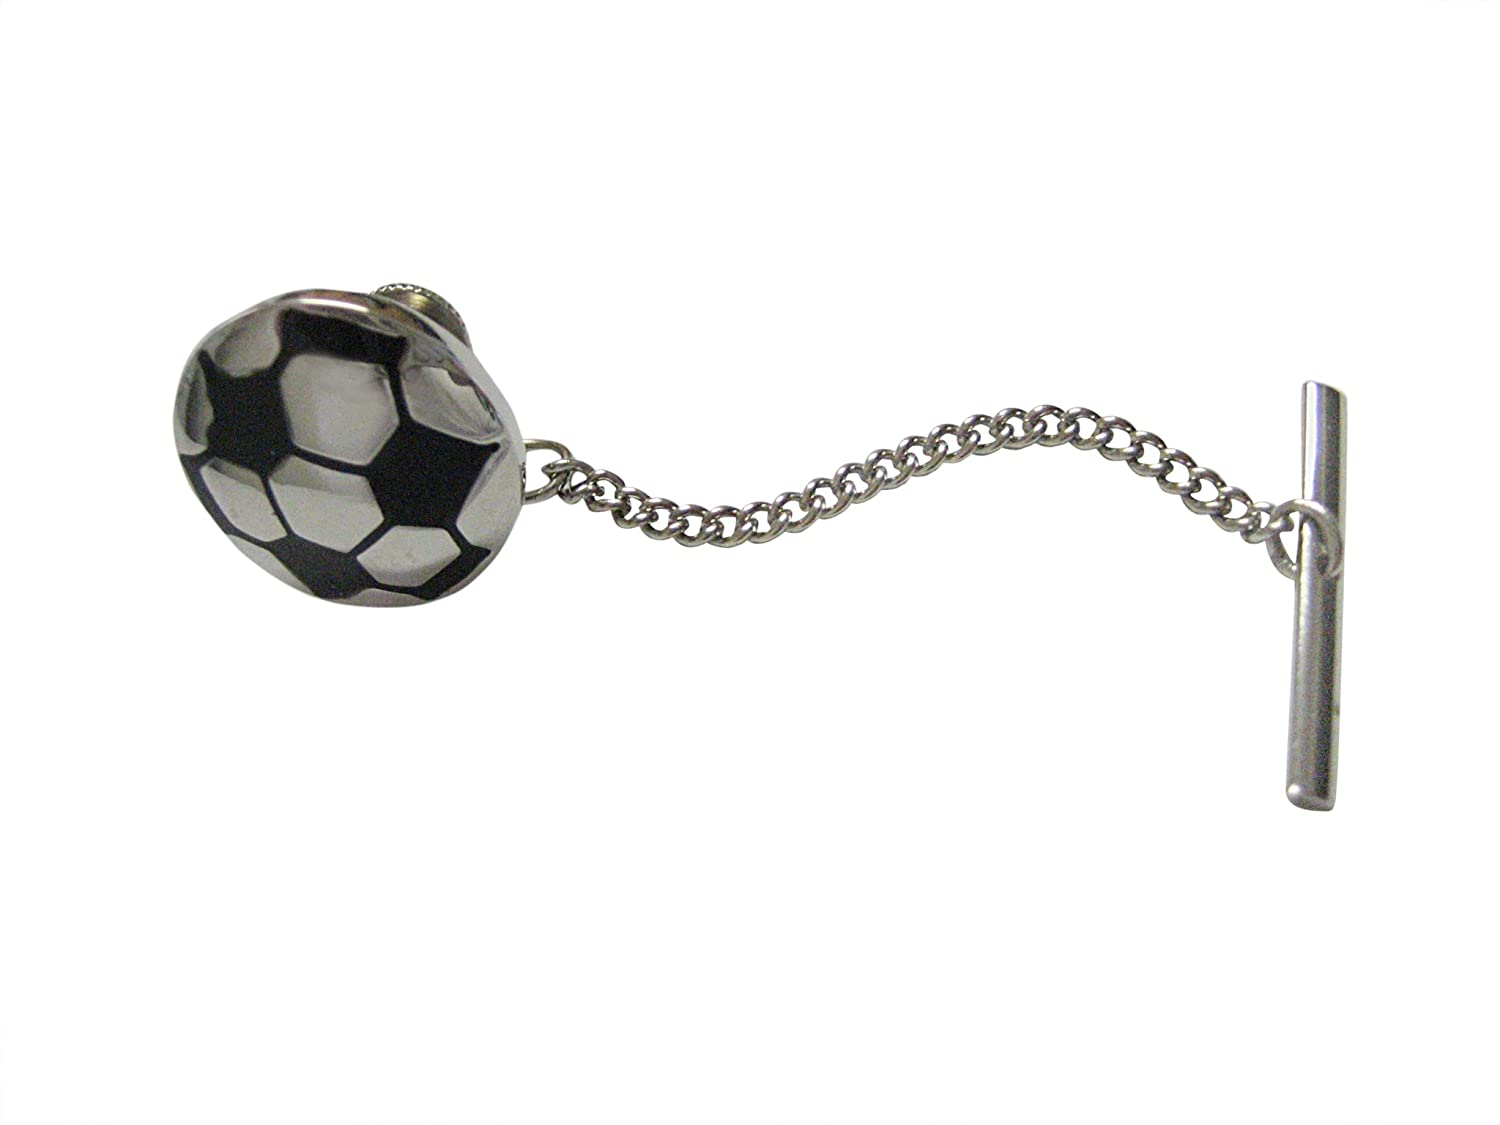 Silver and Black Soccer Ball Tie Tack